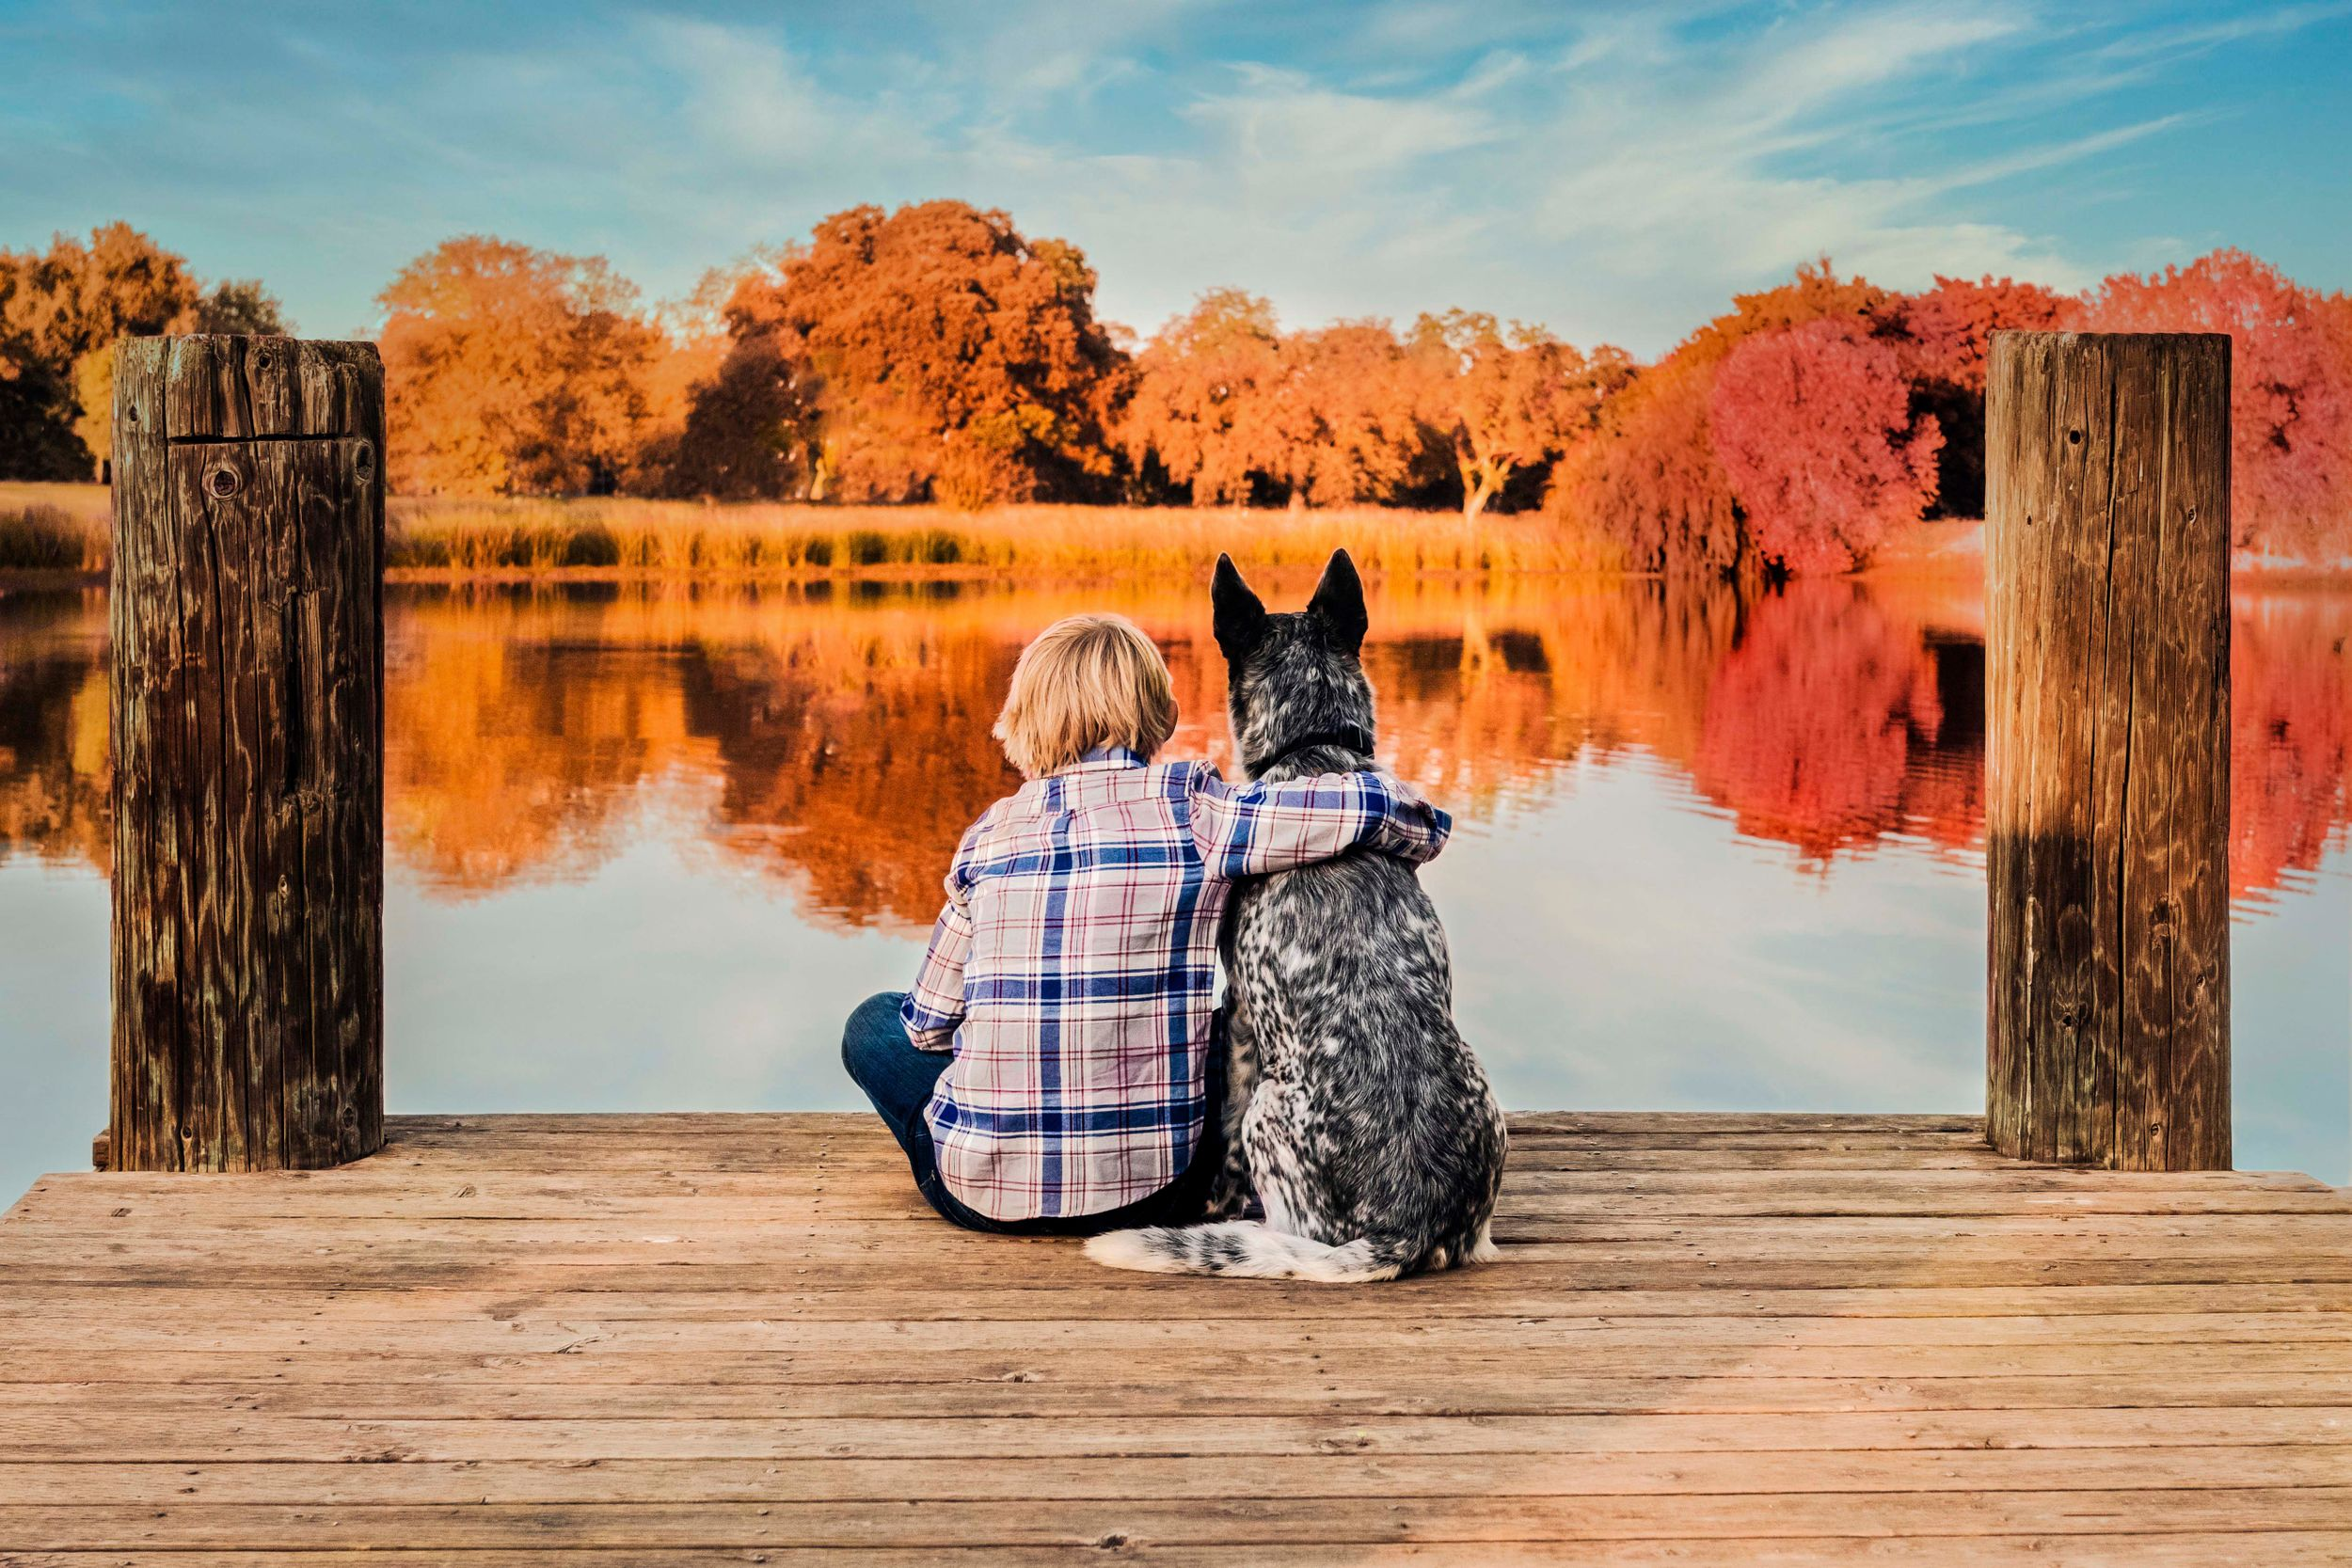 A young boy in a plaid shirt sitting on a dock with his arm around a blue heeler dog, with a pond and autumn trees